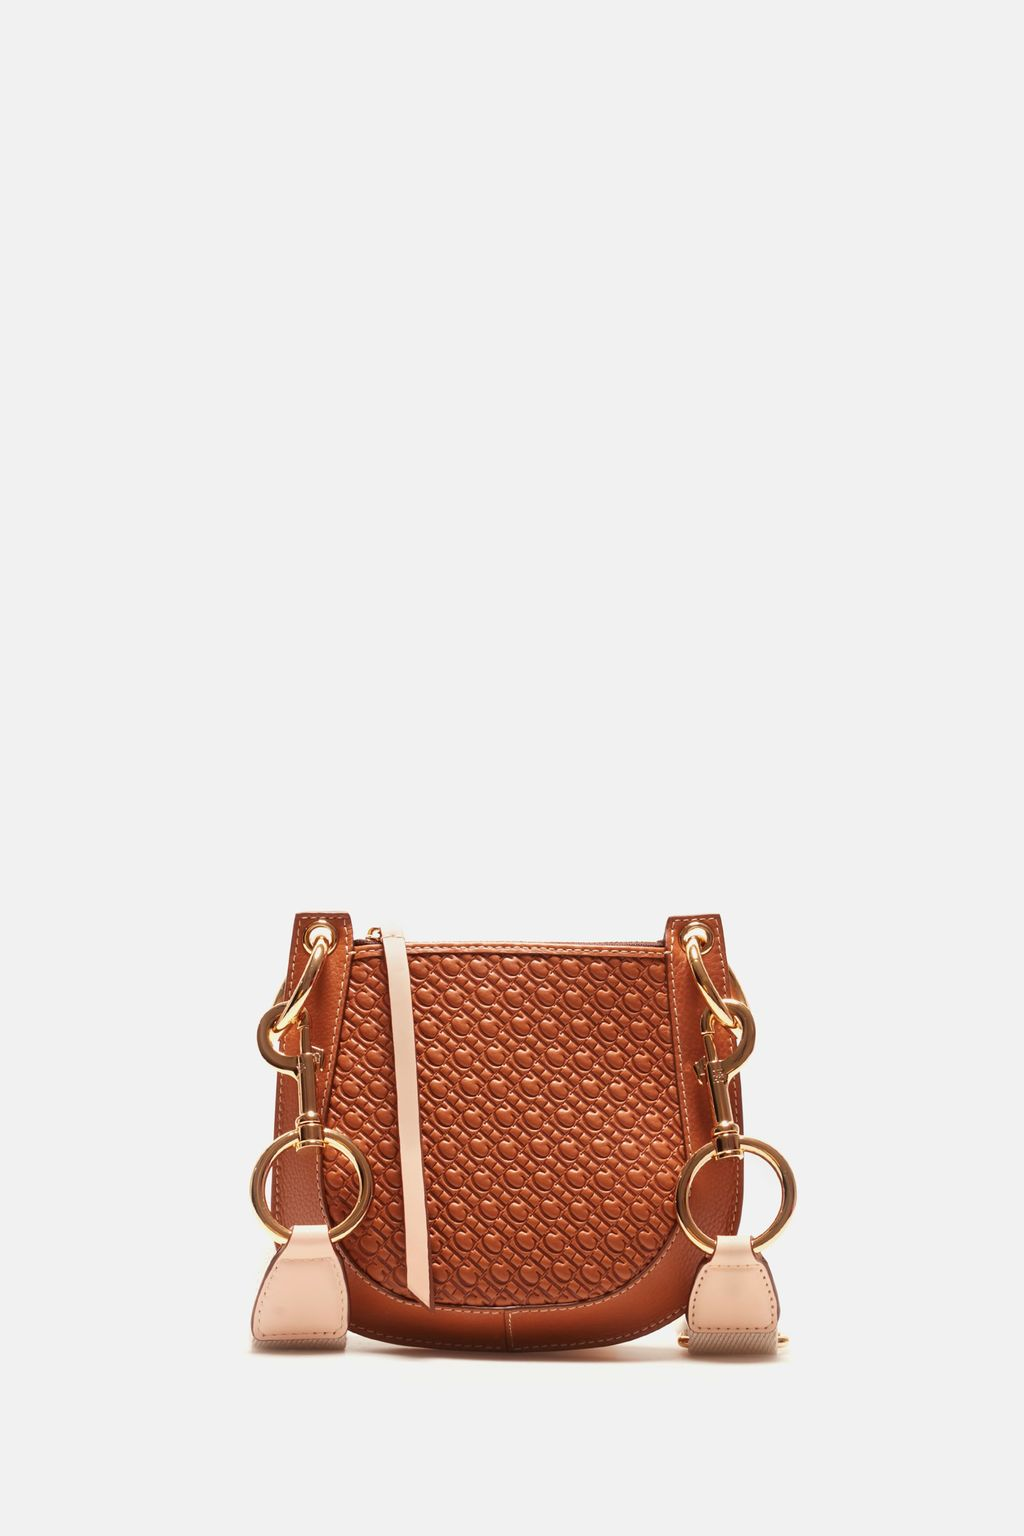 Castañuela 7 | Small cross body bag